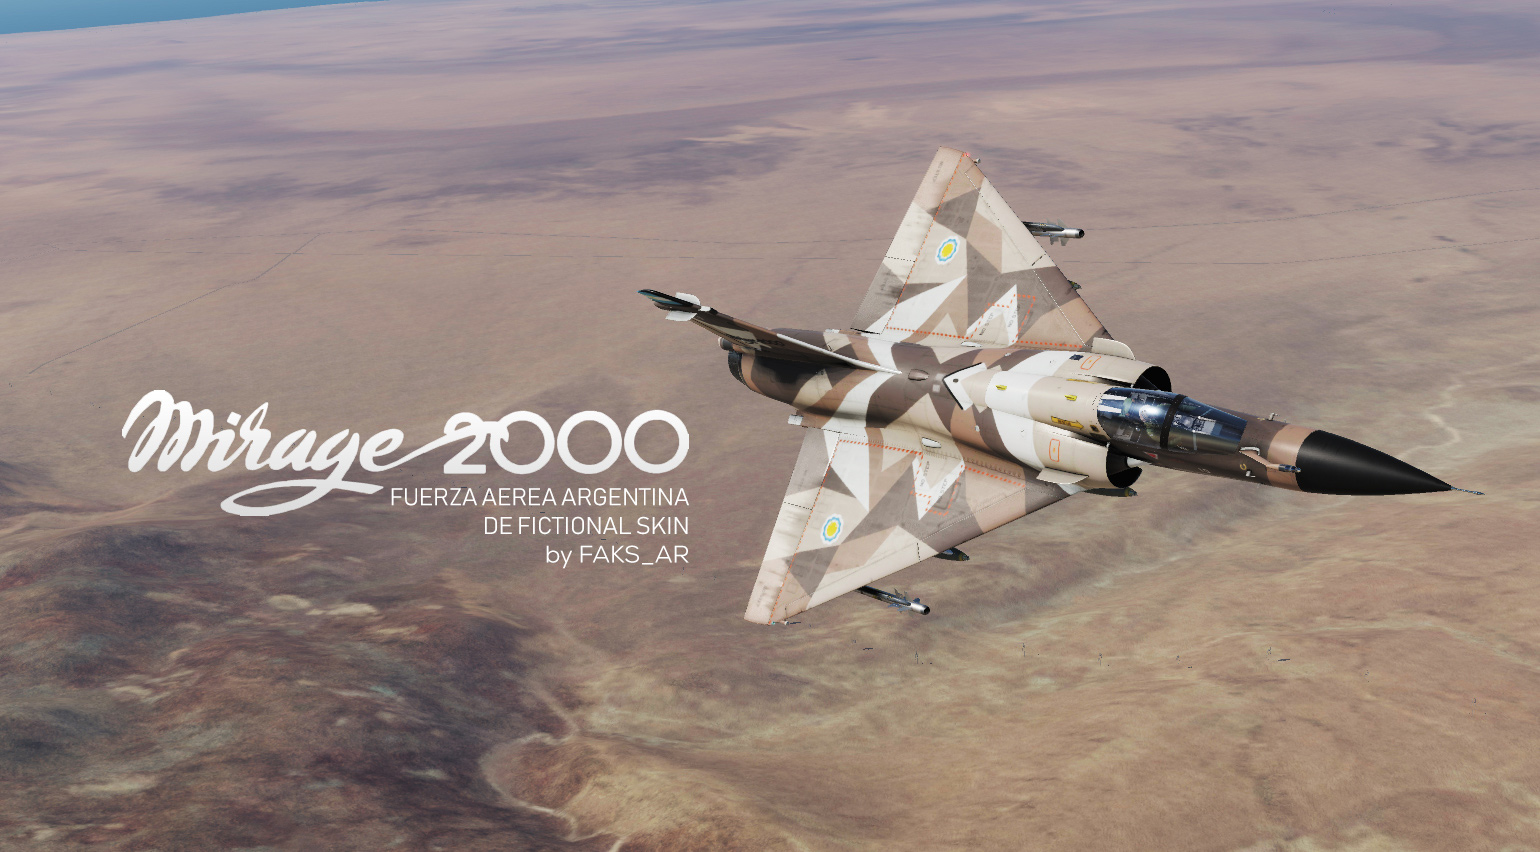 Argentine Mirage 2000C DE Fictional